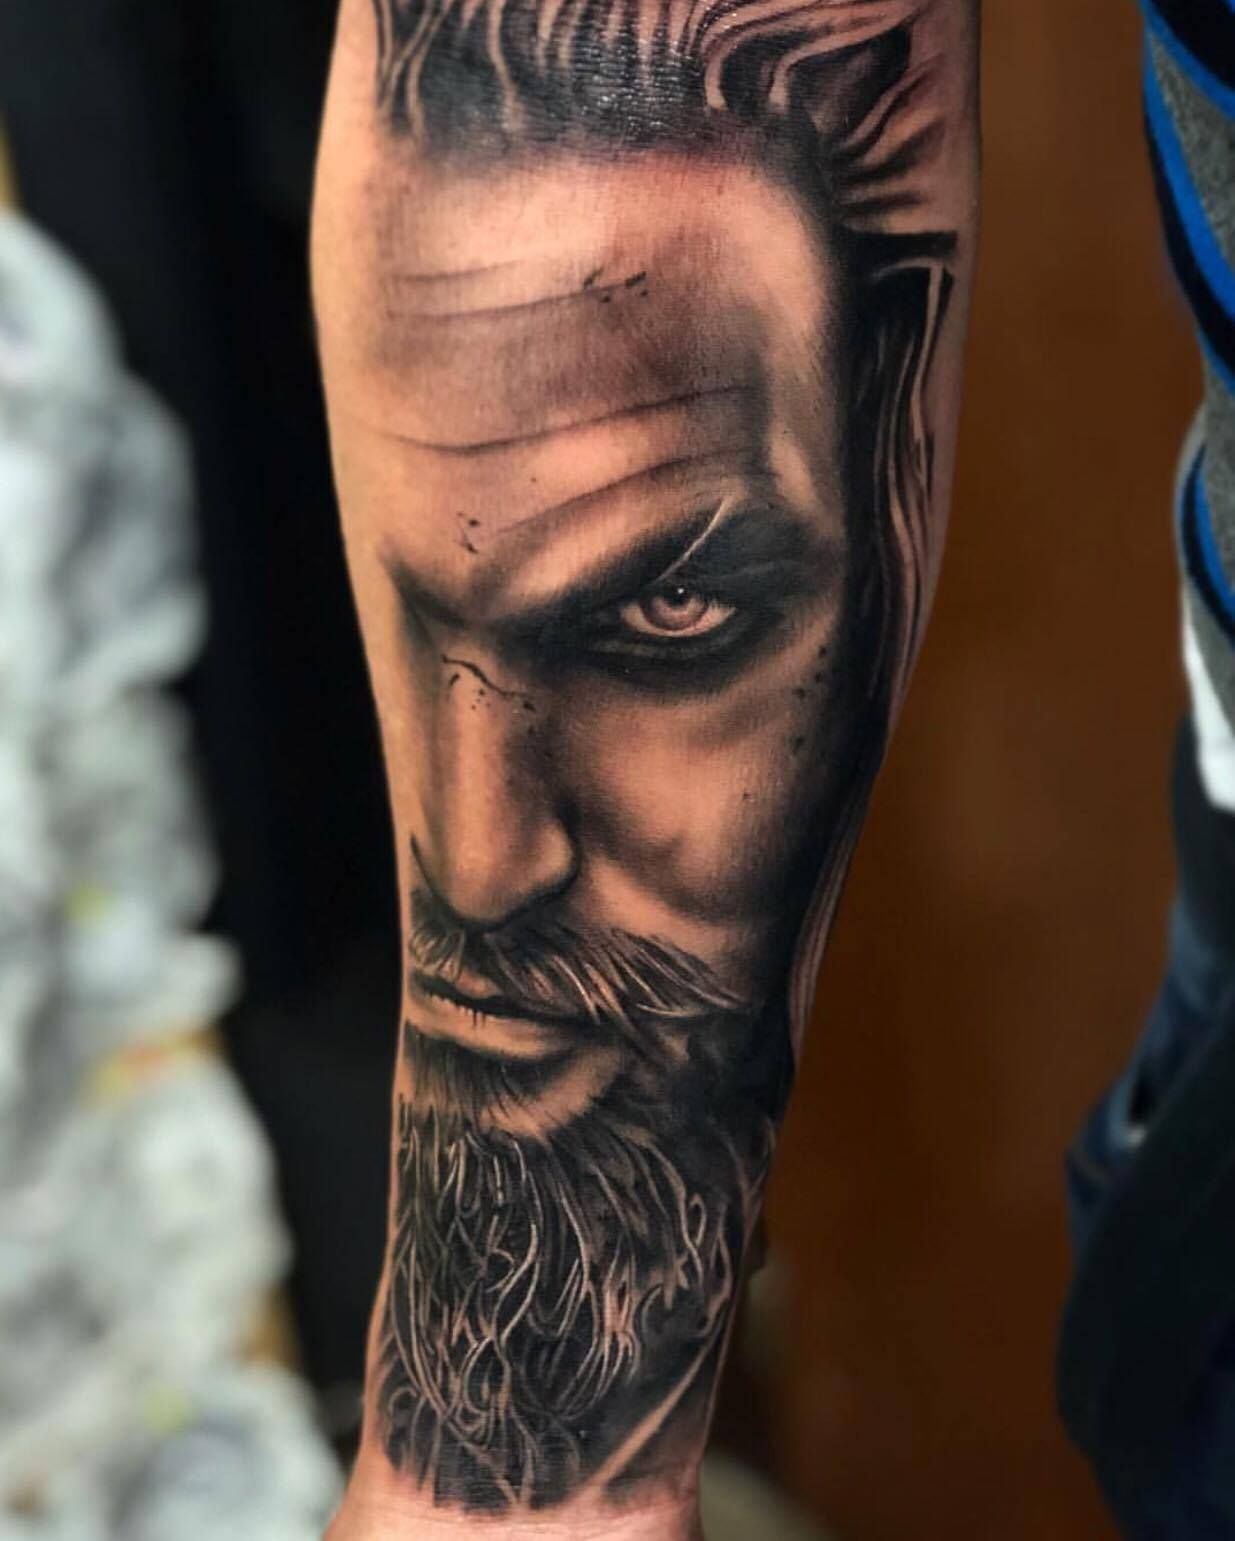 Aquaman Tattoo By Cristian Limited Availability At Ideas And Designs